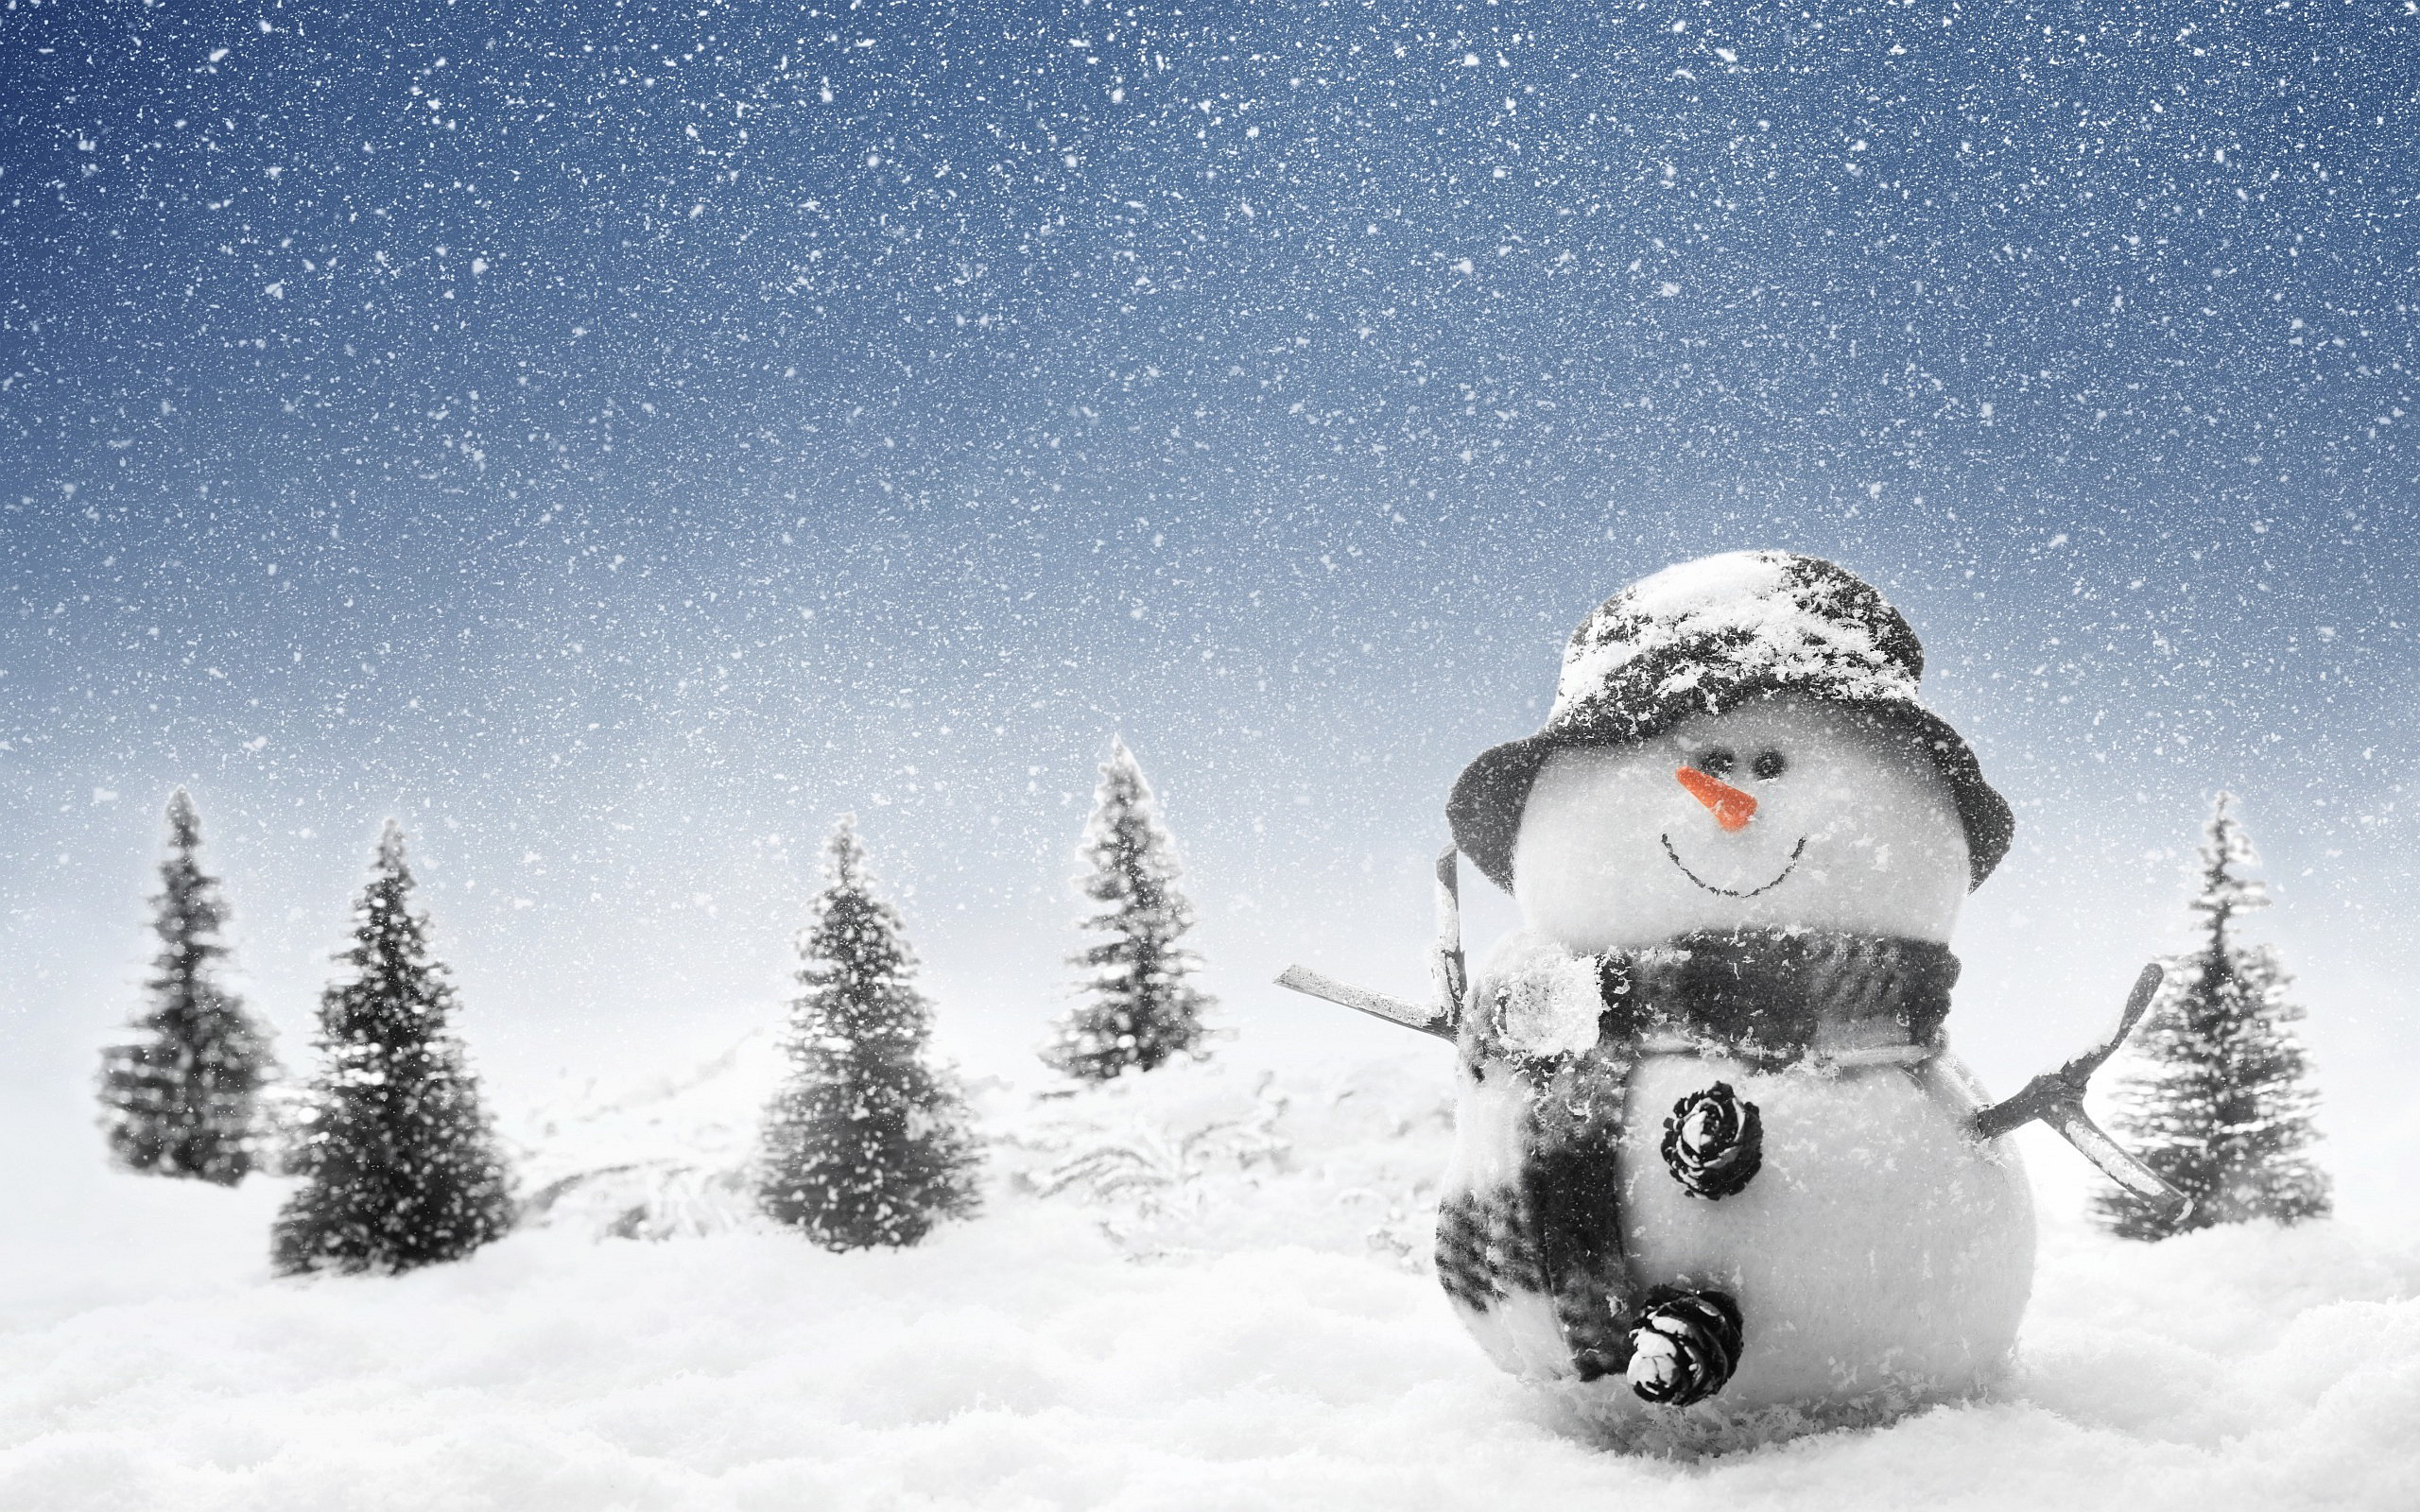 Winter Snowman Wallpapers Pictures Photos Images